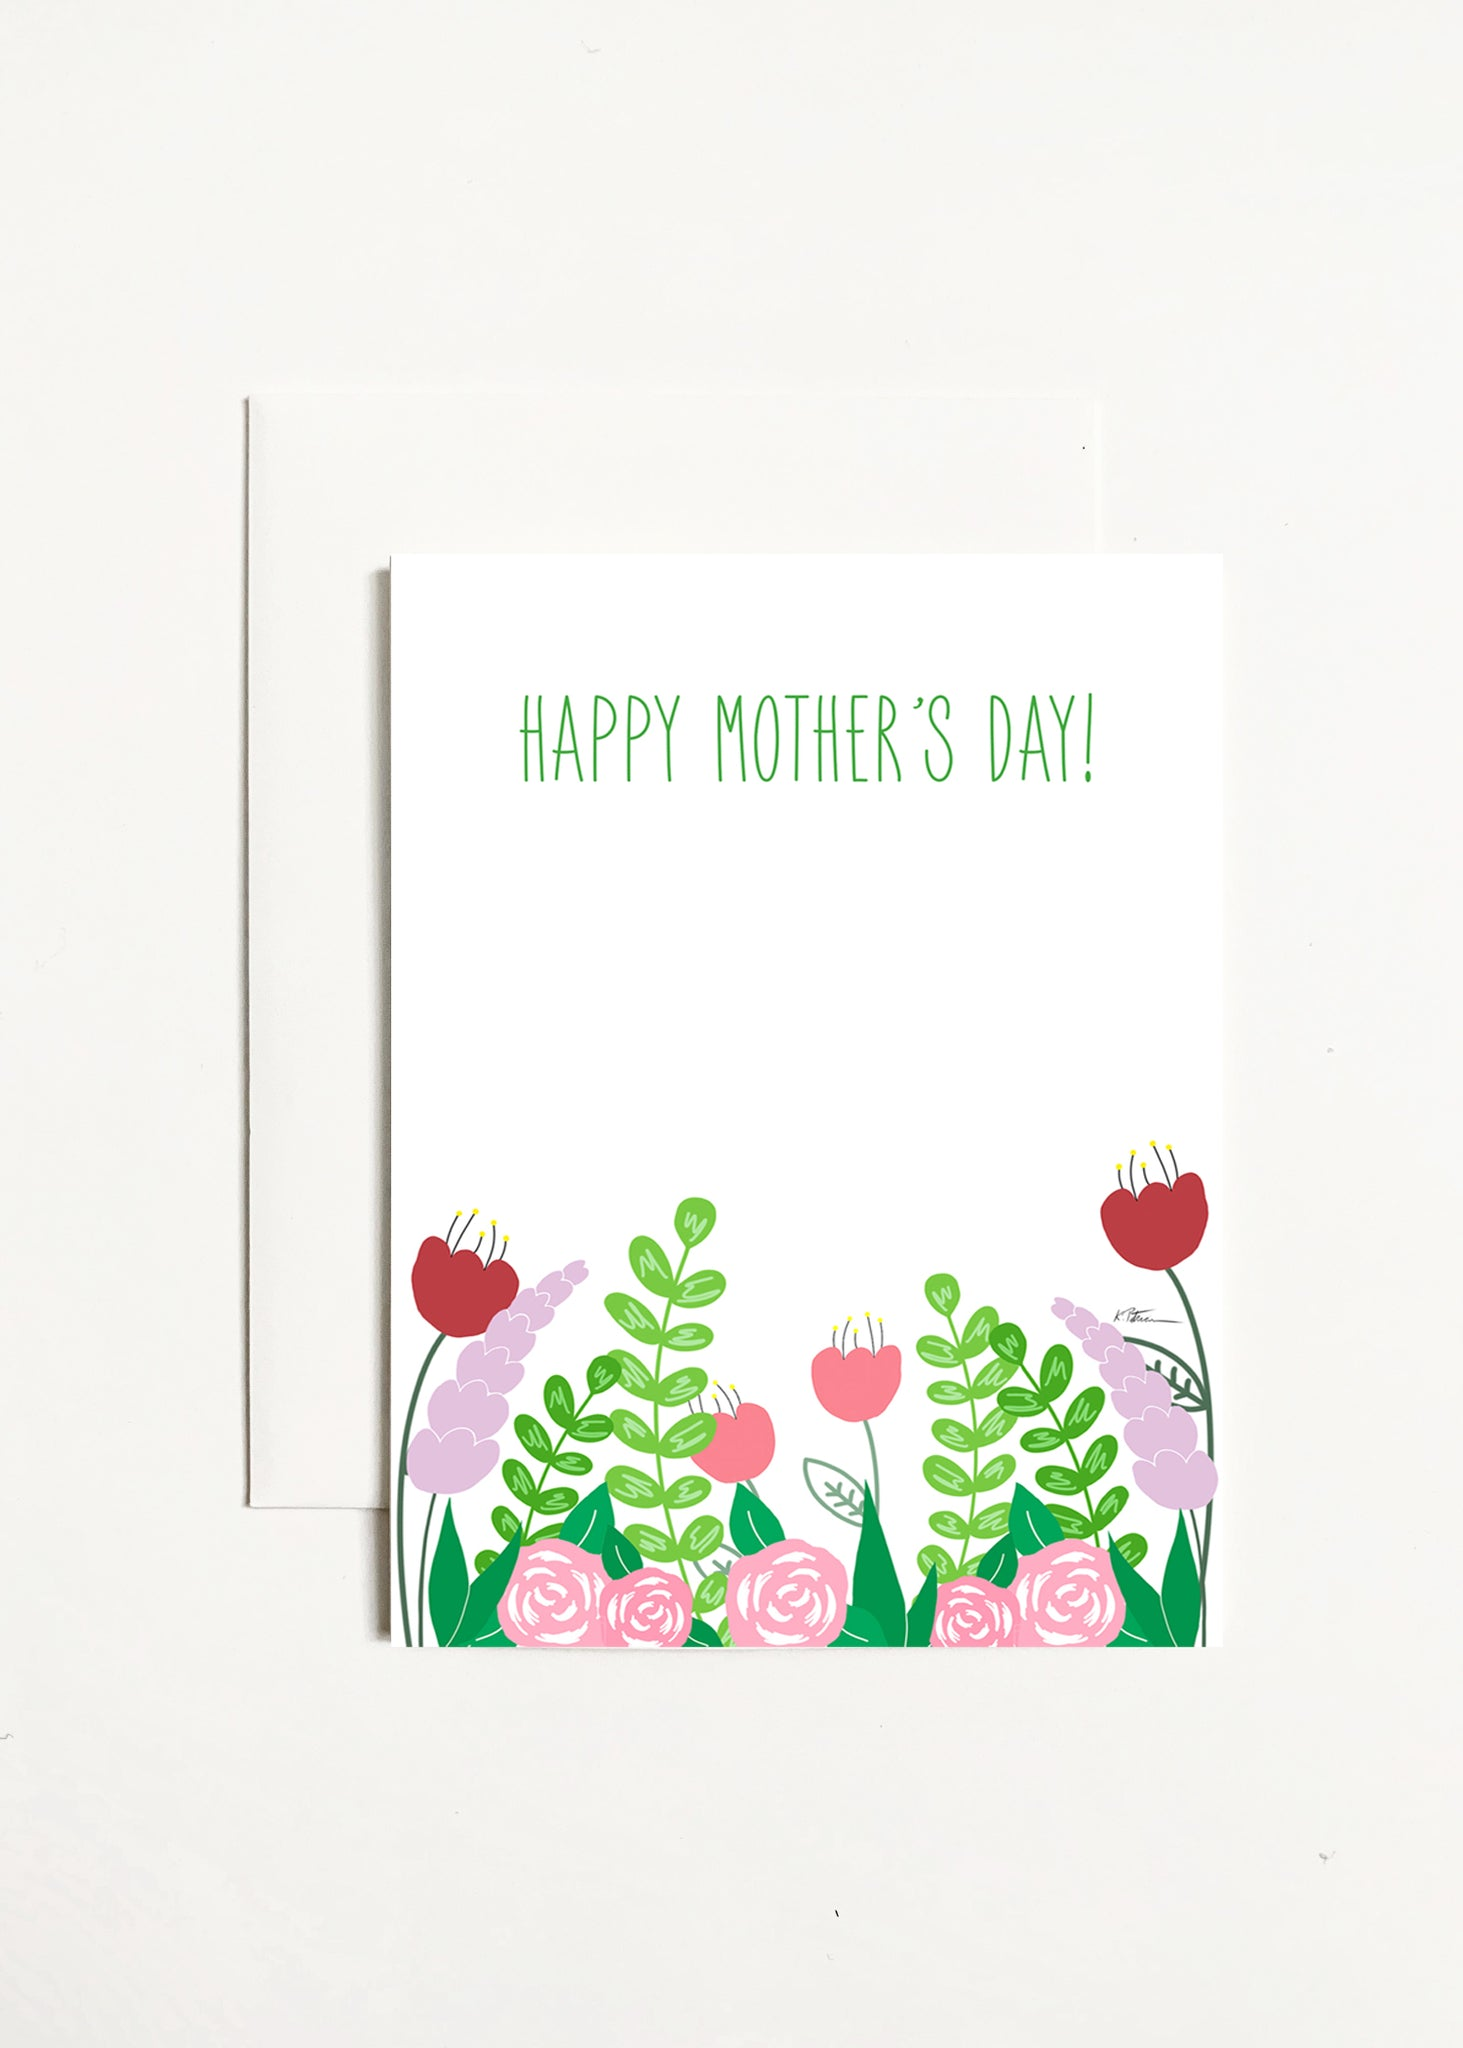 Happy Mother's Day! - Flowers